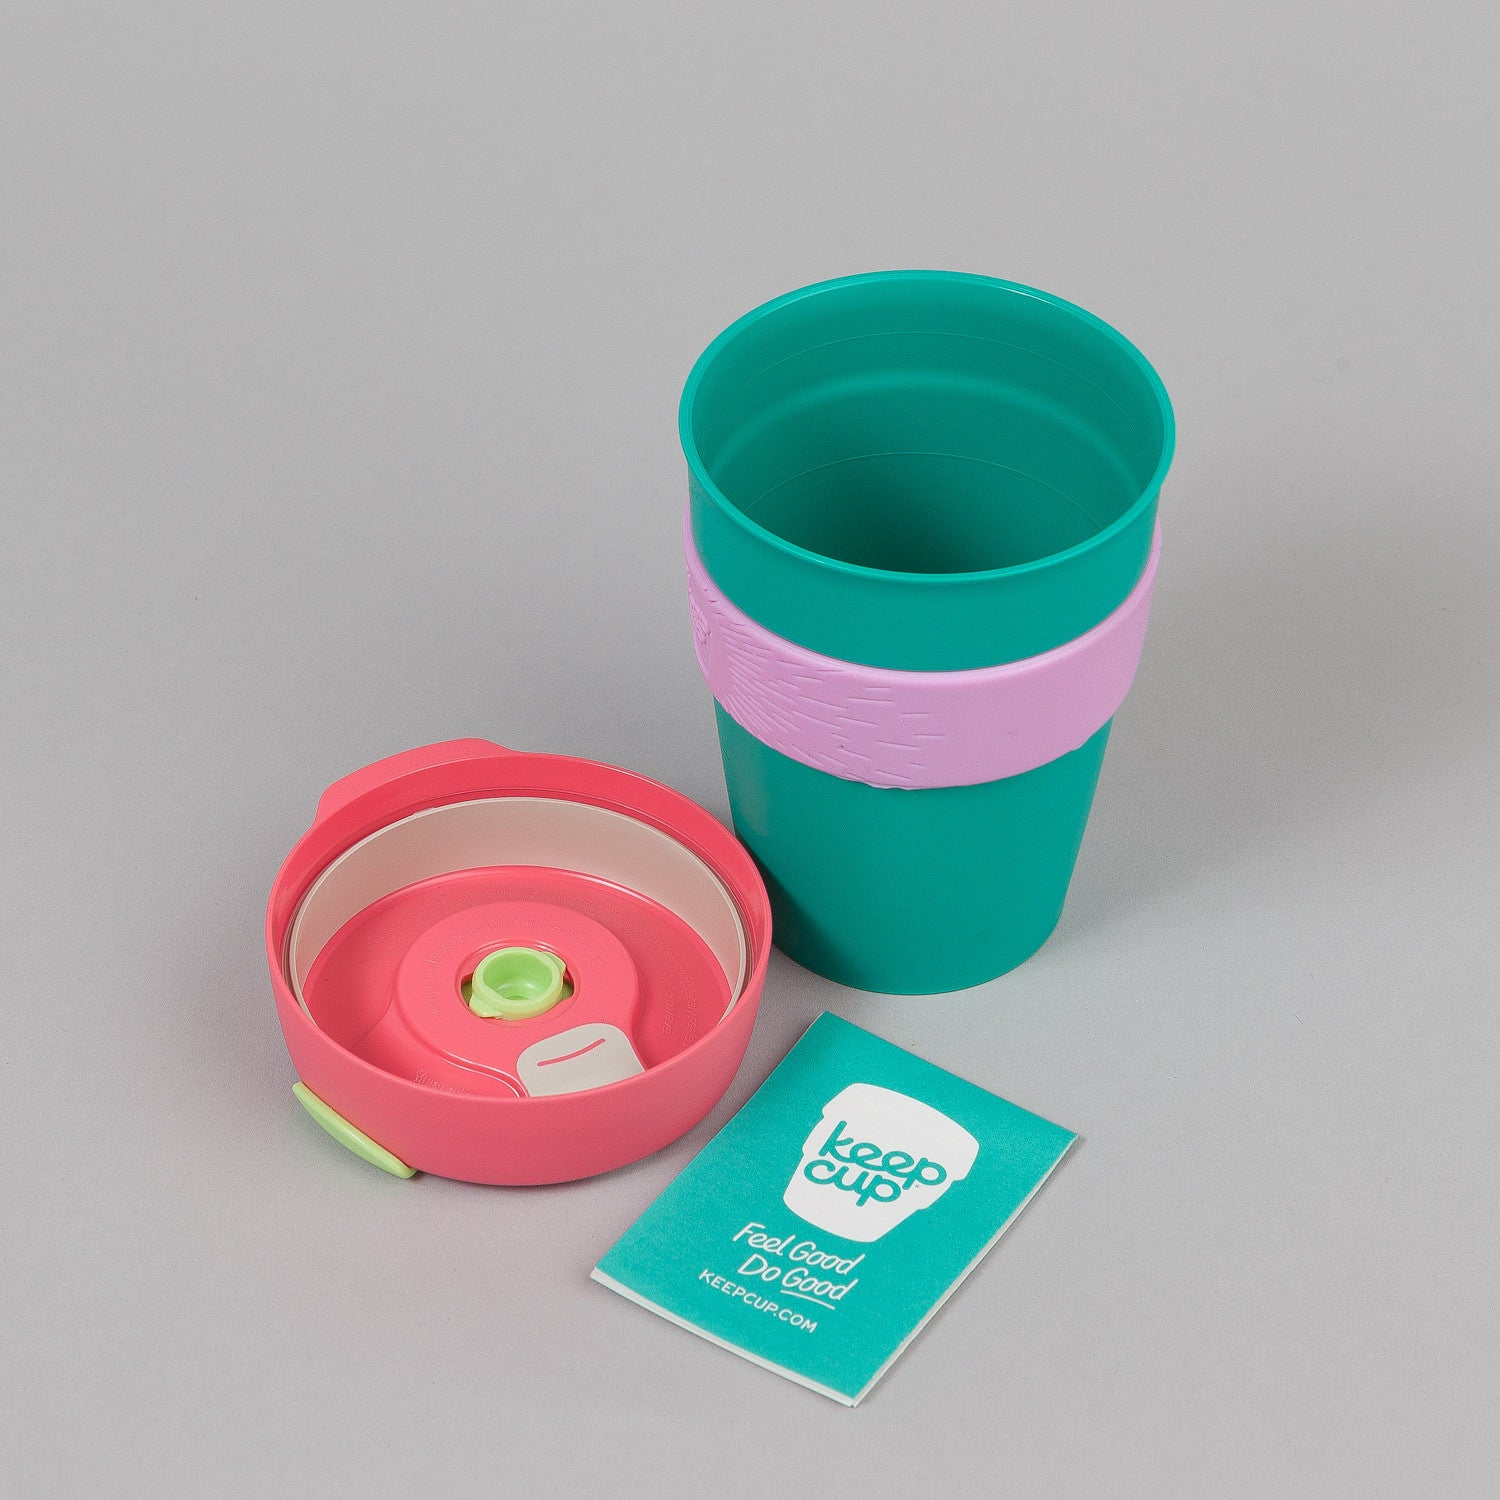 KeepCup Khidr 12oz Medium Reusable Coffee Cup - Green Jade / Pink Sun